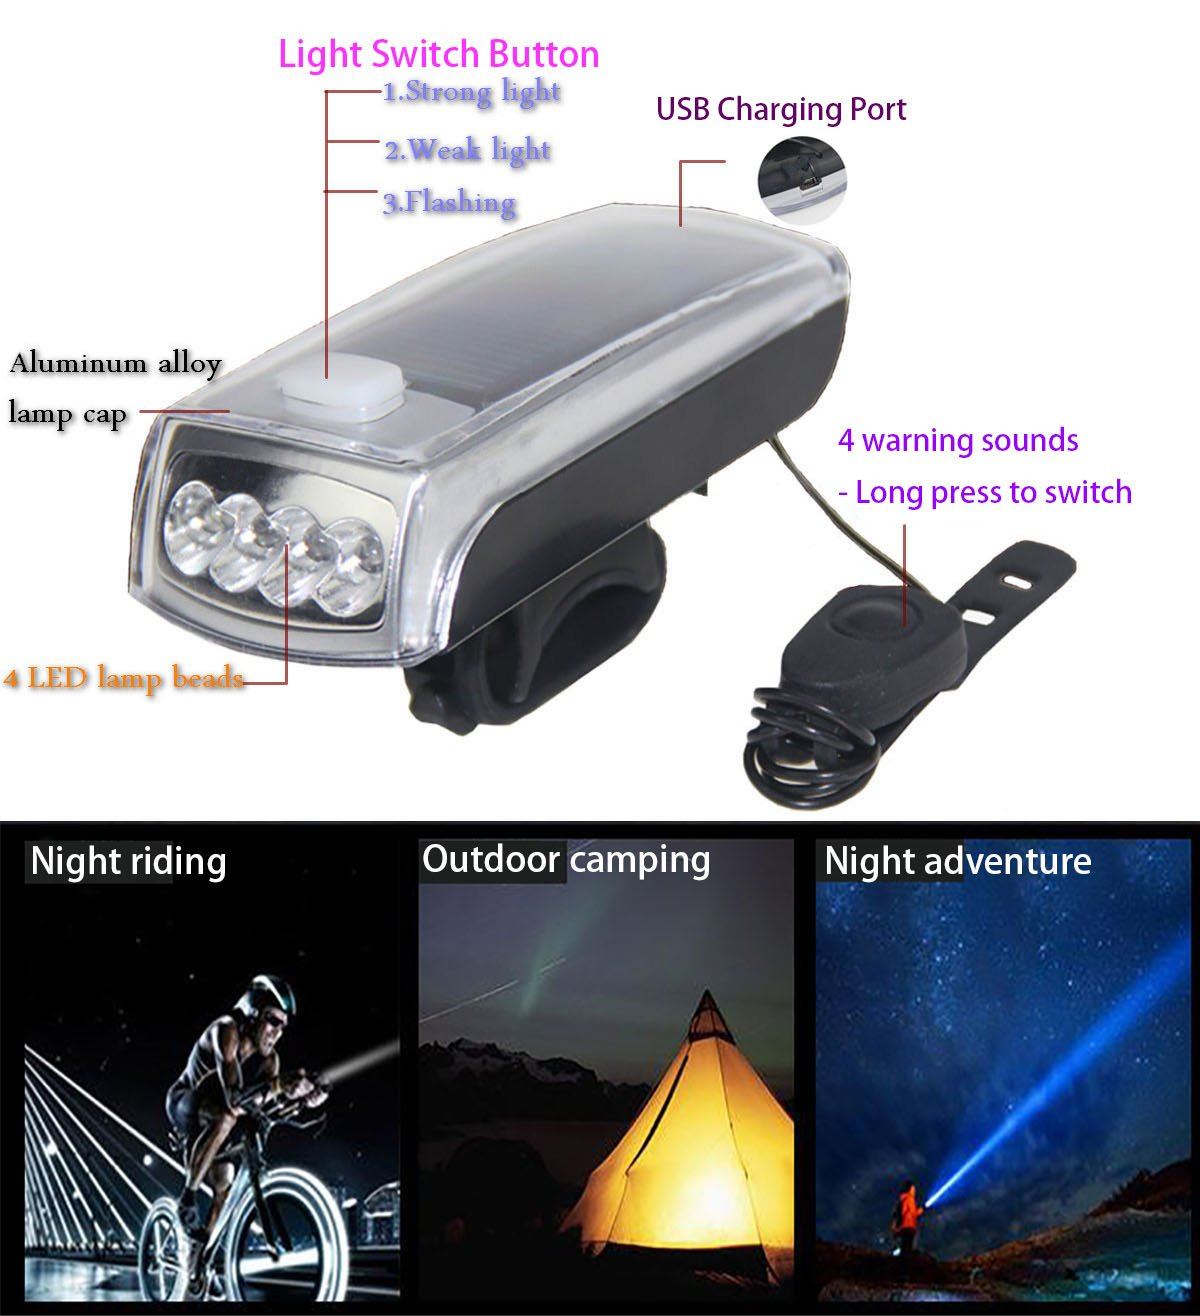 Ultra Bright Bicycle Lights Set - Front Headlights & Horn & Back Taillights, Two(Solar and USB)-in-One Rechargeable LED Bike Front Lights, Waterproof & Safety Road, 1200mAH/1200 Lumens Head Lights. by Juxical (Image #6)